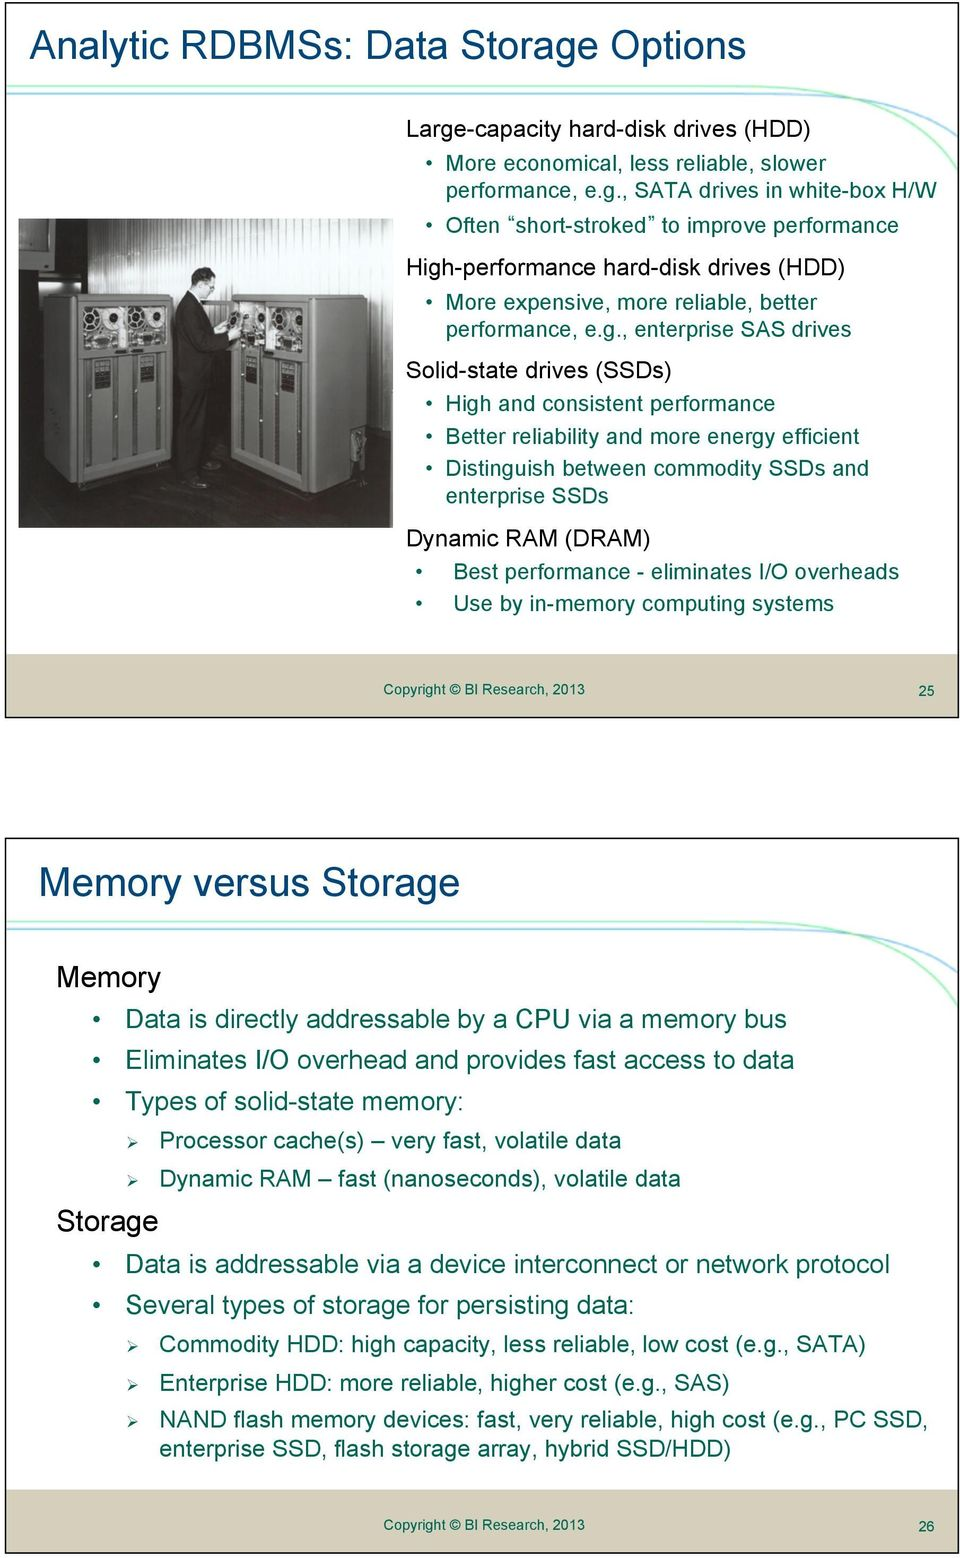 (DRAM) Best performance - eliminates I/O overheads Use by in-memory computing systems 25 Memory versus Storage Memory Data is directly addressable by a CPU via a memory bus Eliminates I/O overhead